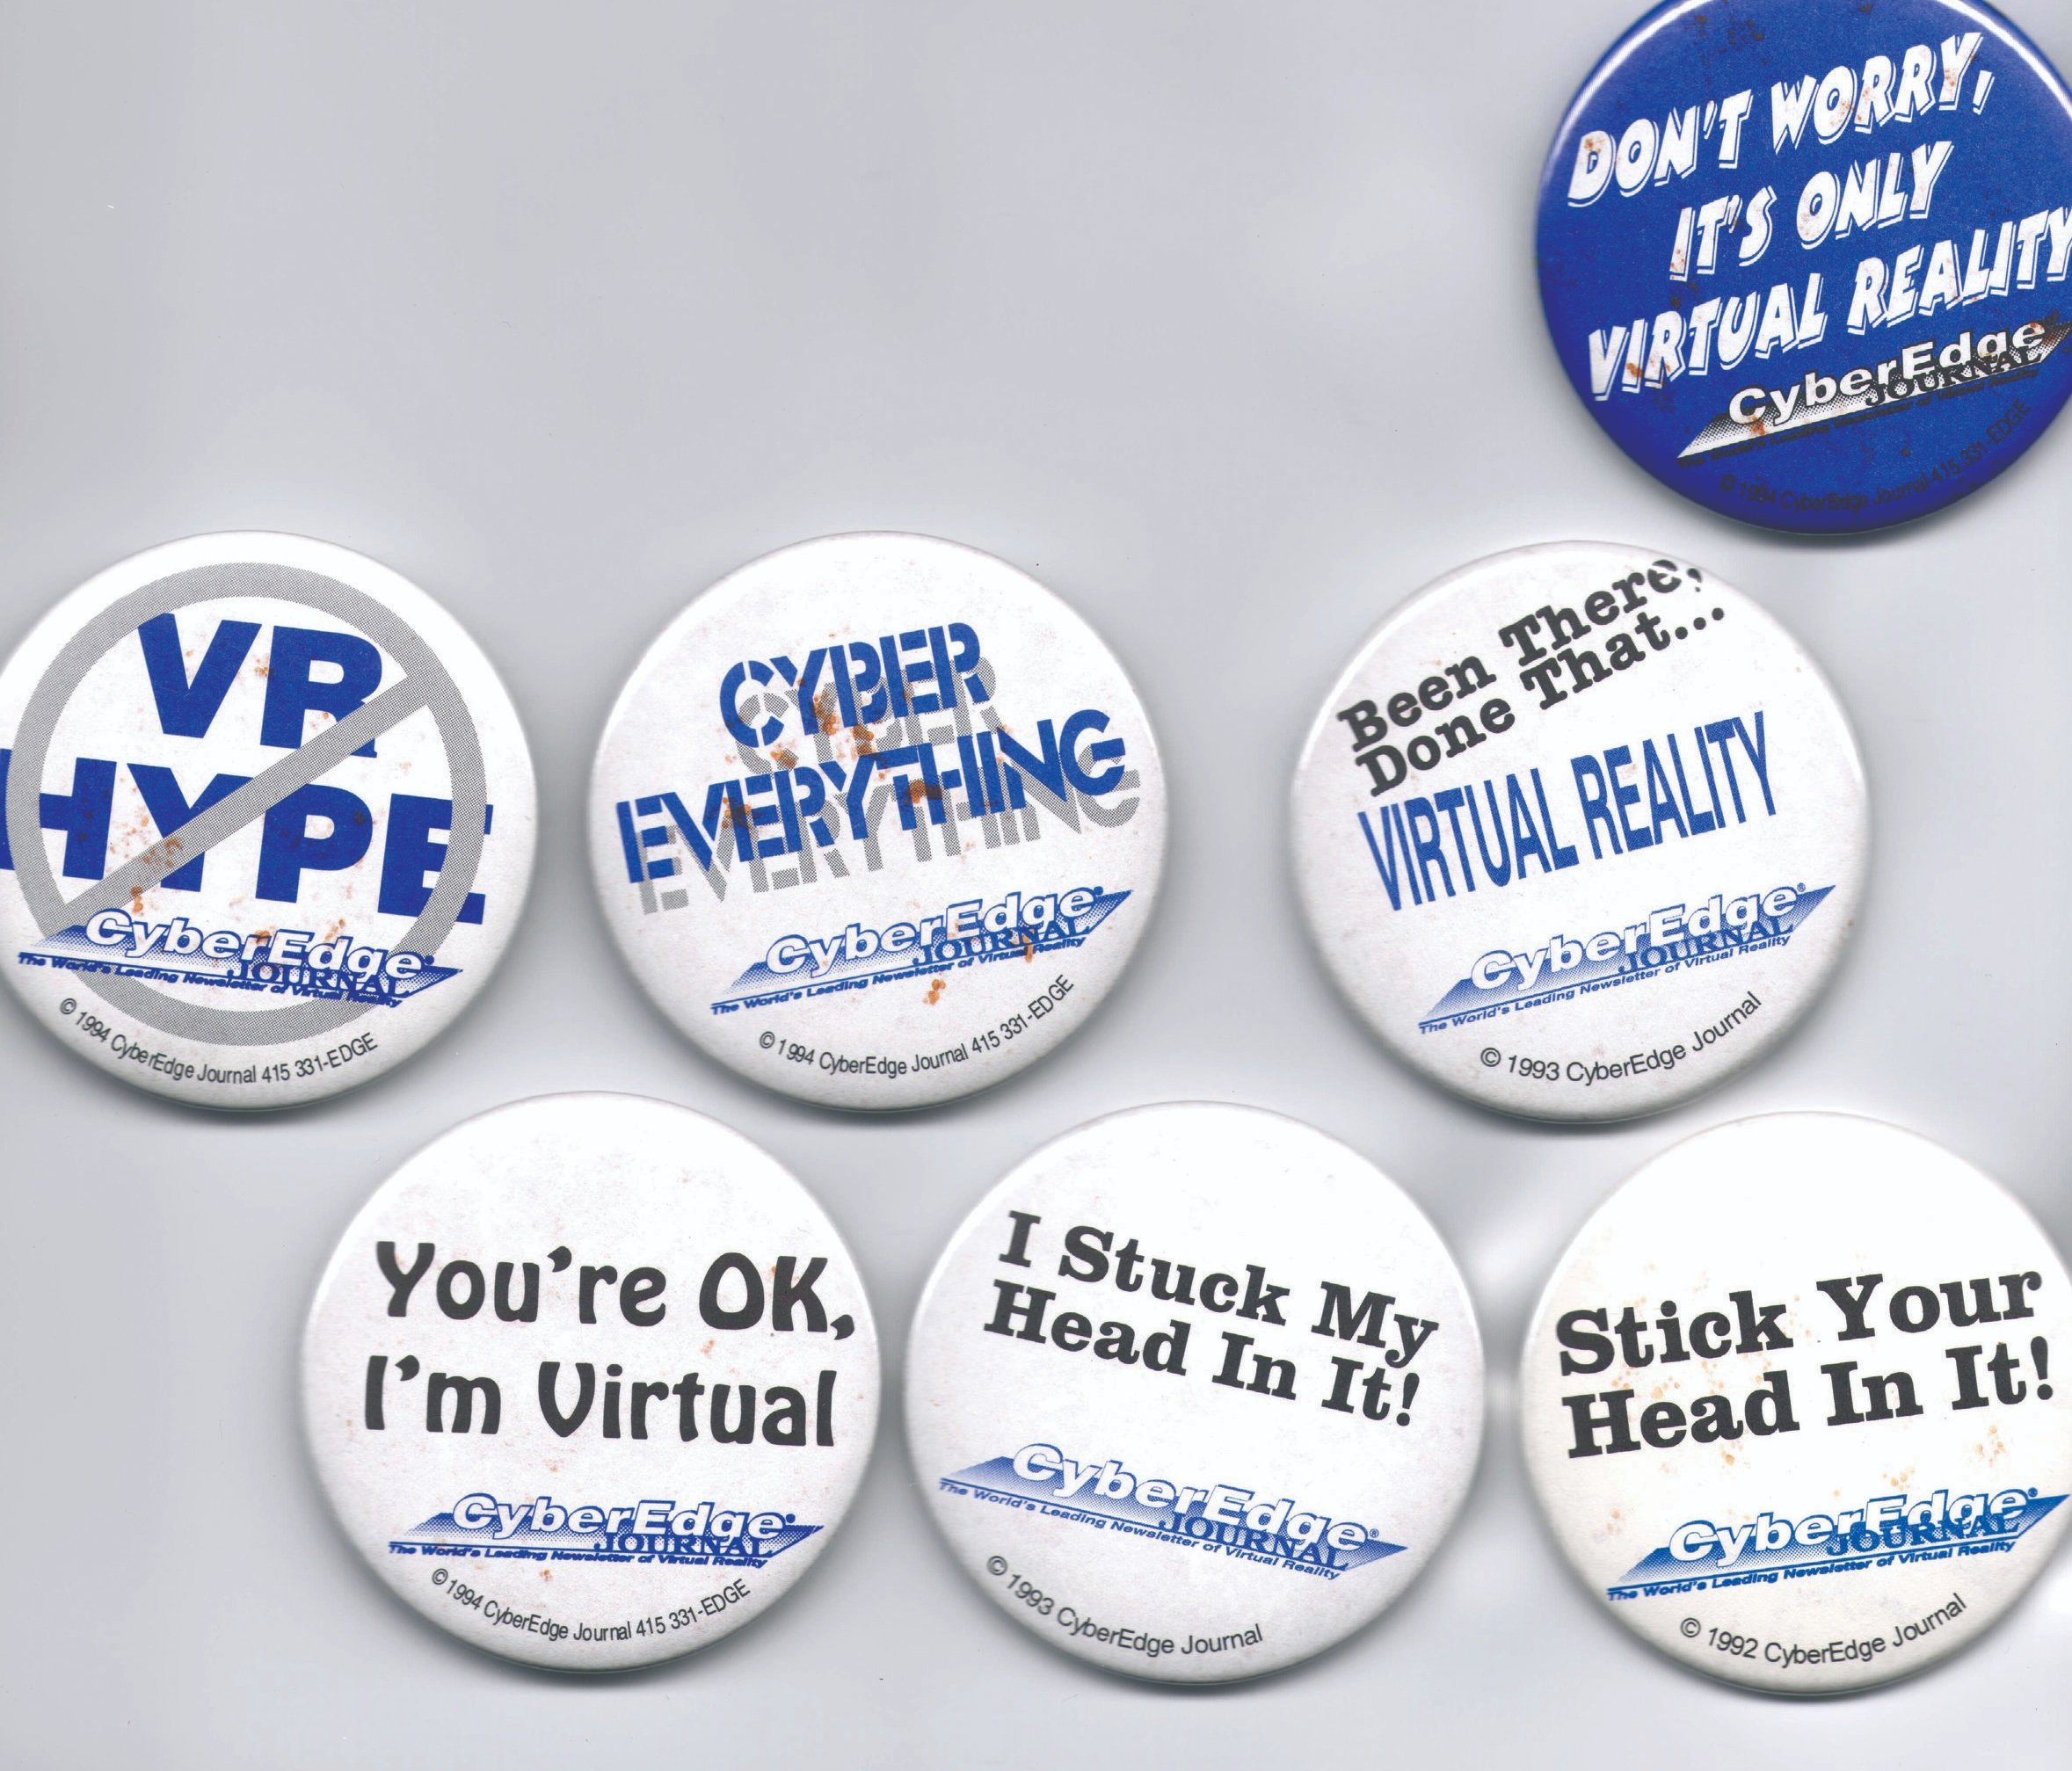 These buttons were given away at conferences and became quite the collectible.